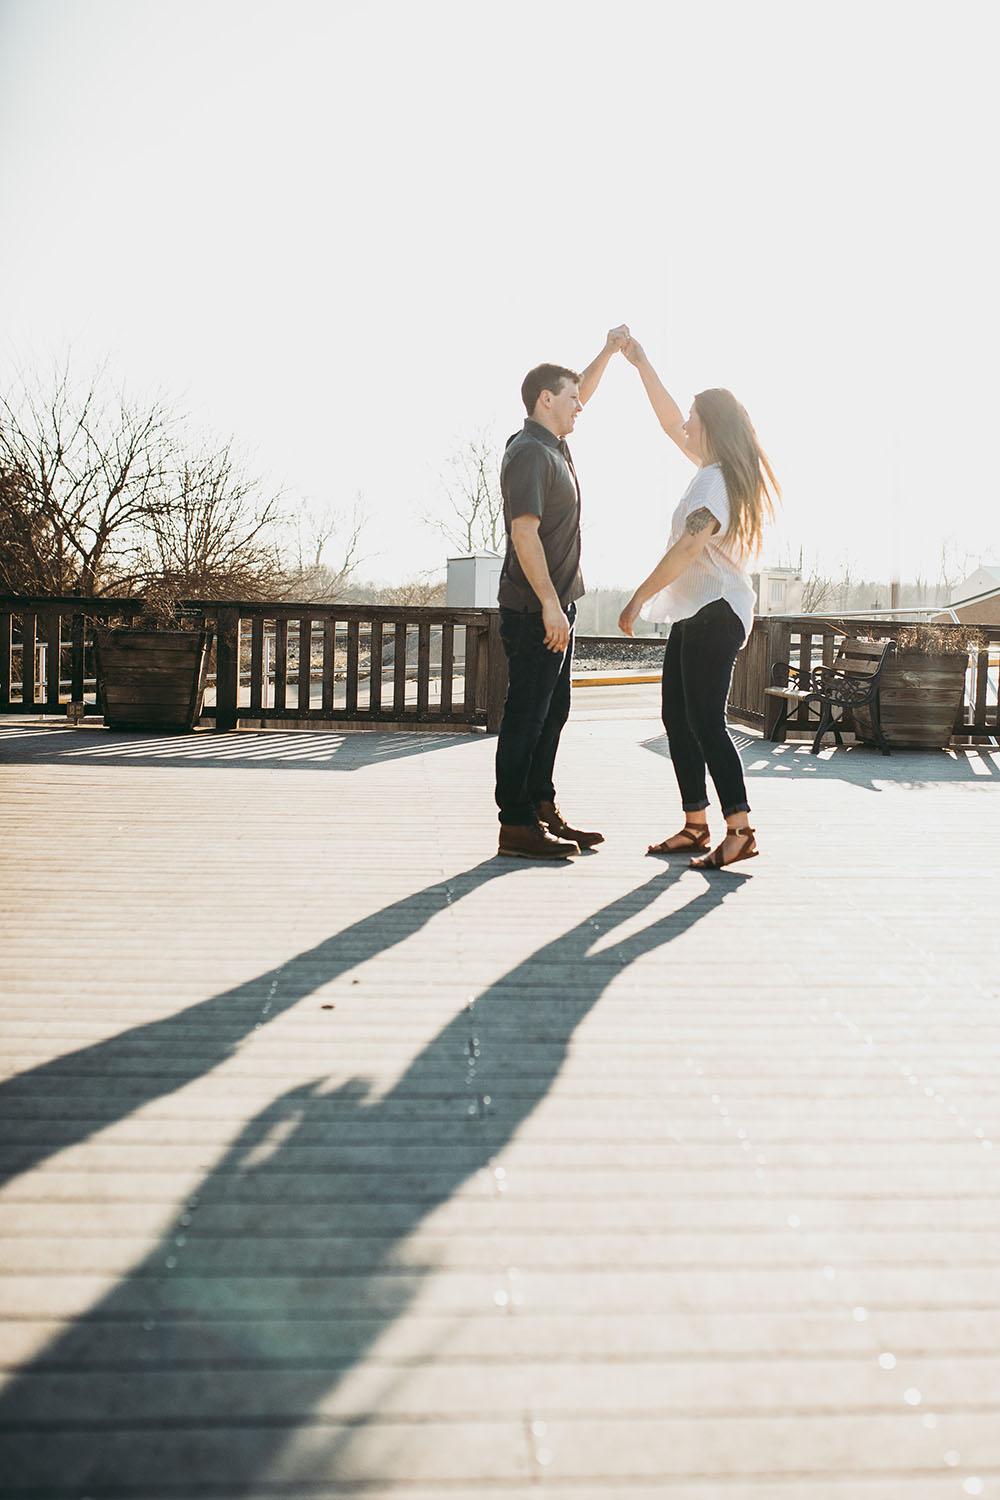 Shutter Up Studios | Engagement photographer in Williamsport Indiana | Sunset dancing couples silhouette session